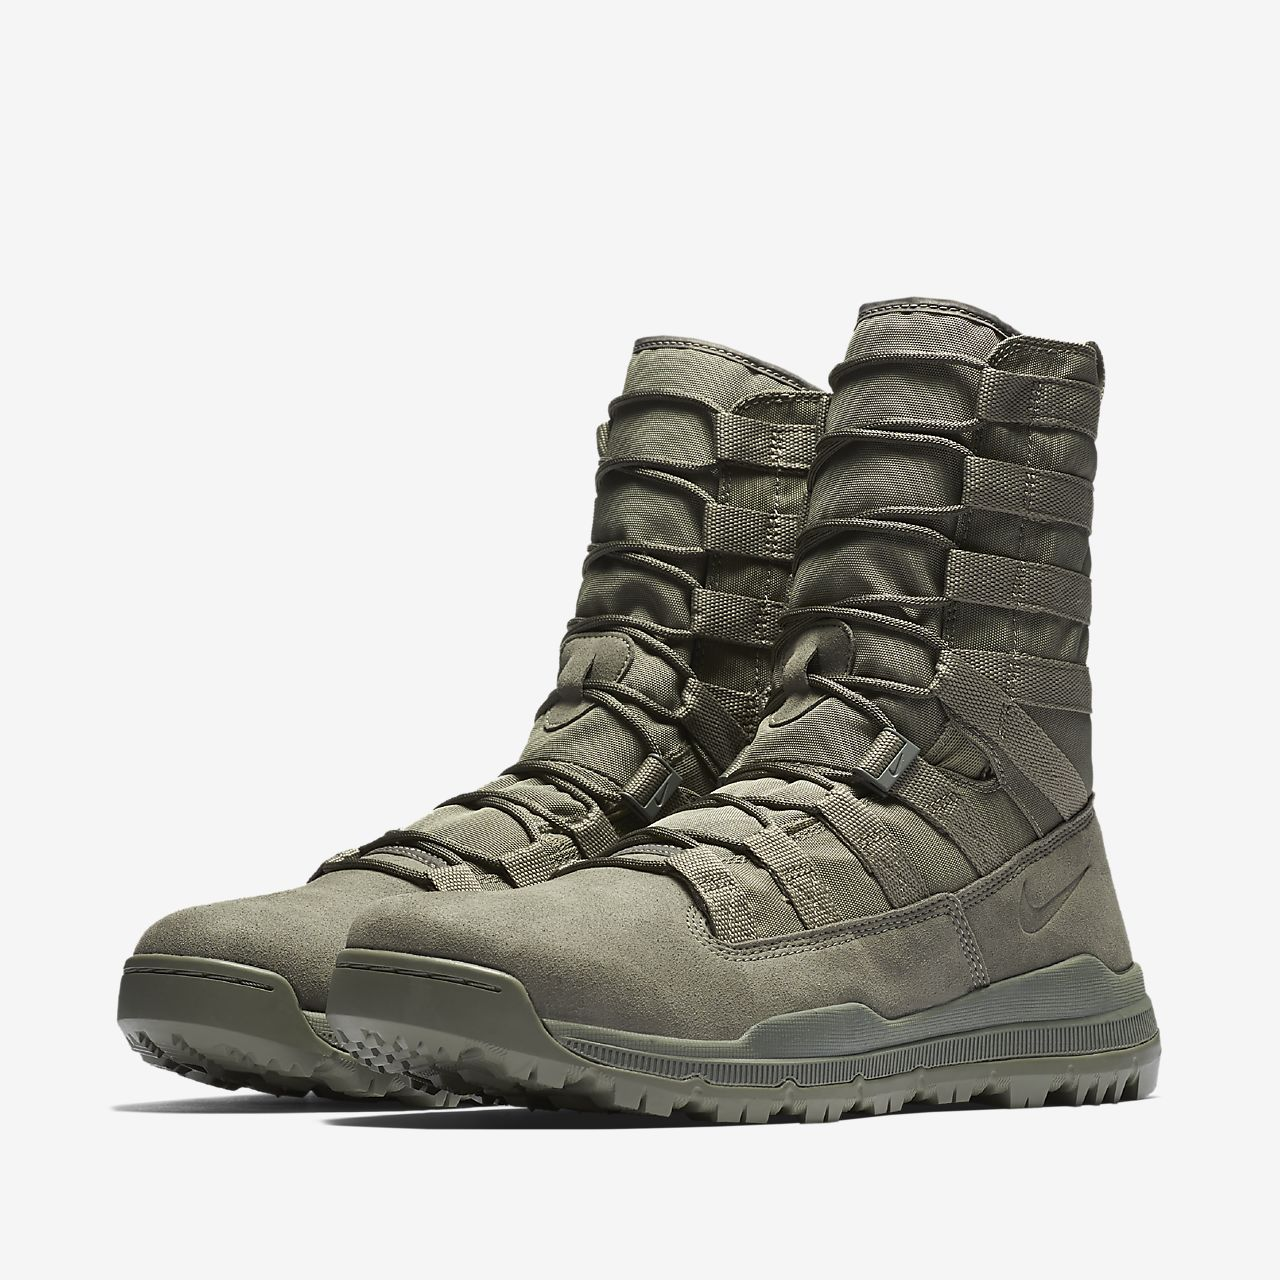 new products 1fa36 9e4e6 ... Nike SFB Gen 2 8